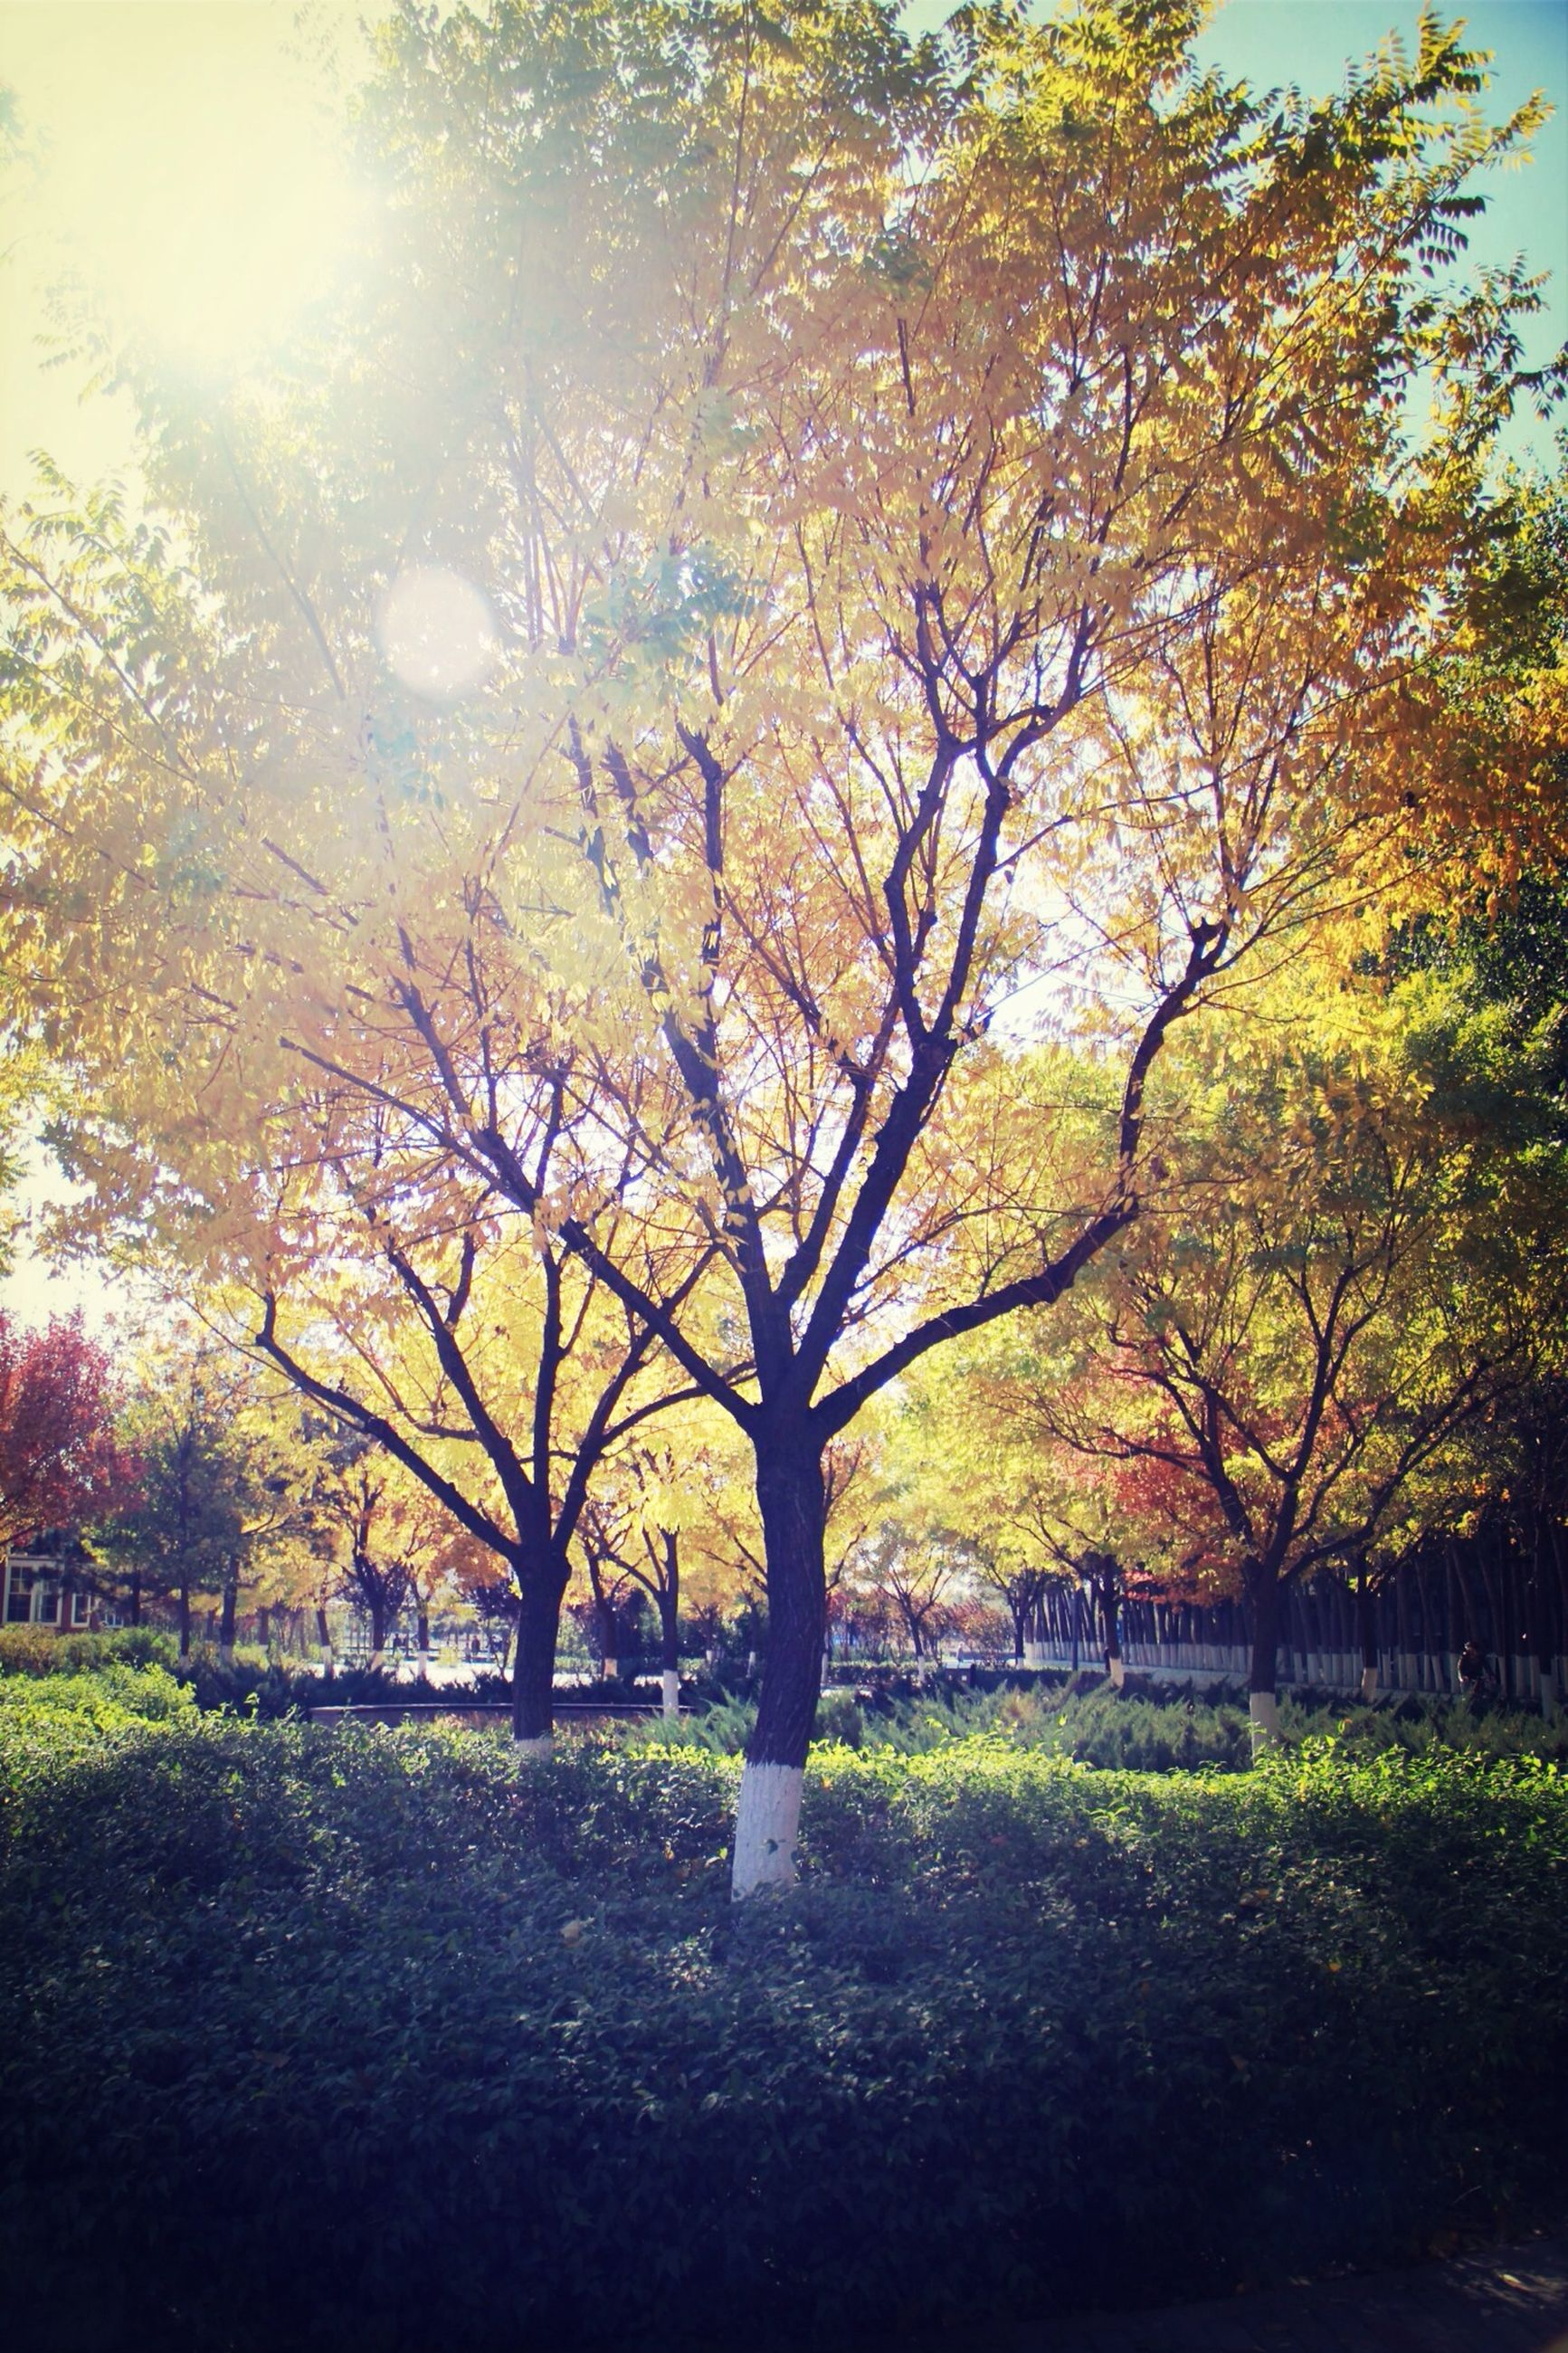 tree, tranquility, growth, beauty in nature, autumn, tranquil scene, branch, nature, scenics, park - man made space, grass, sunlight, change, park, green color, tree trunk, season, field, landscape, idyllic